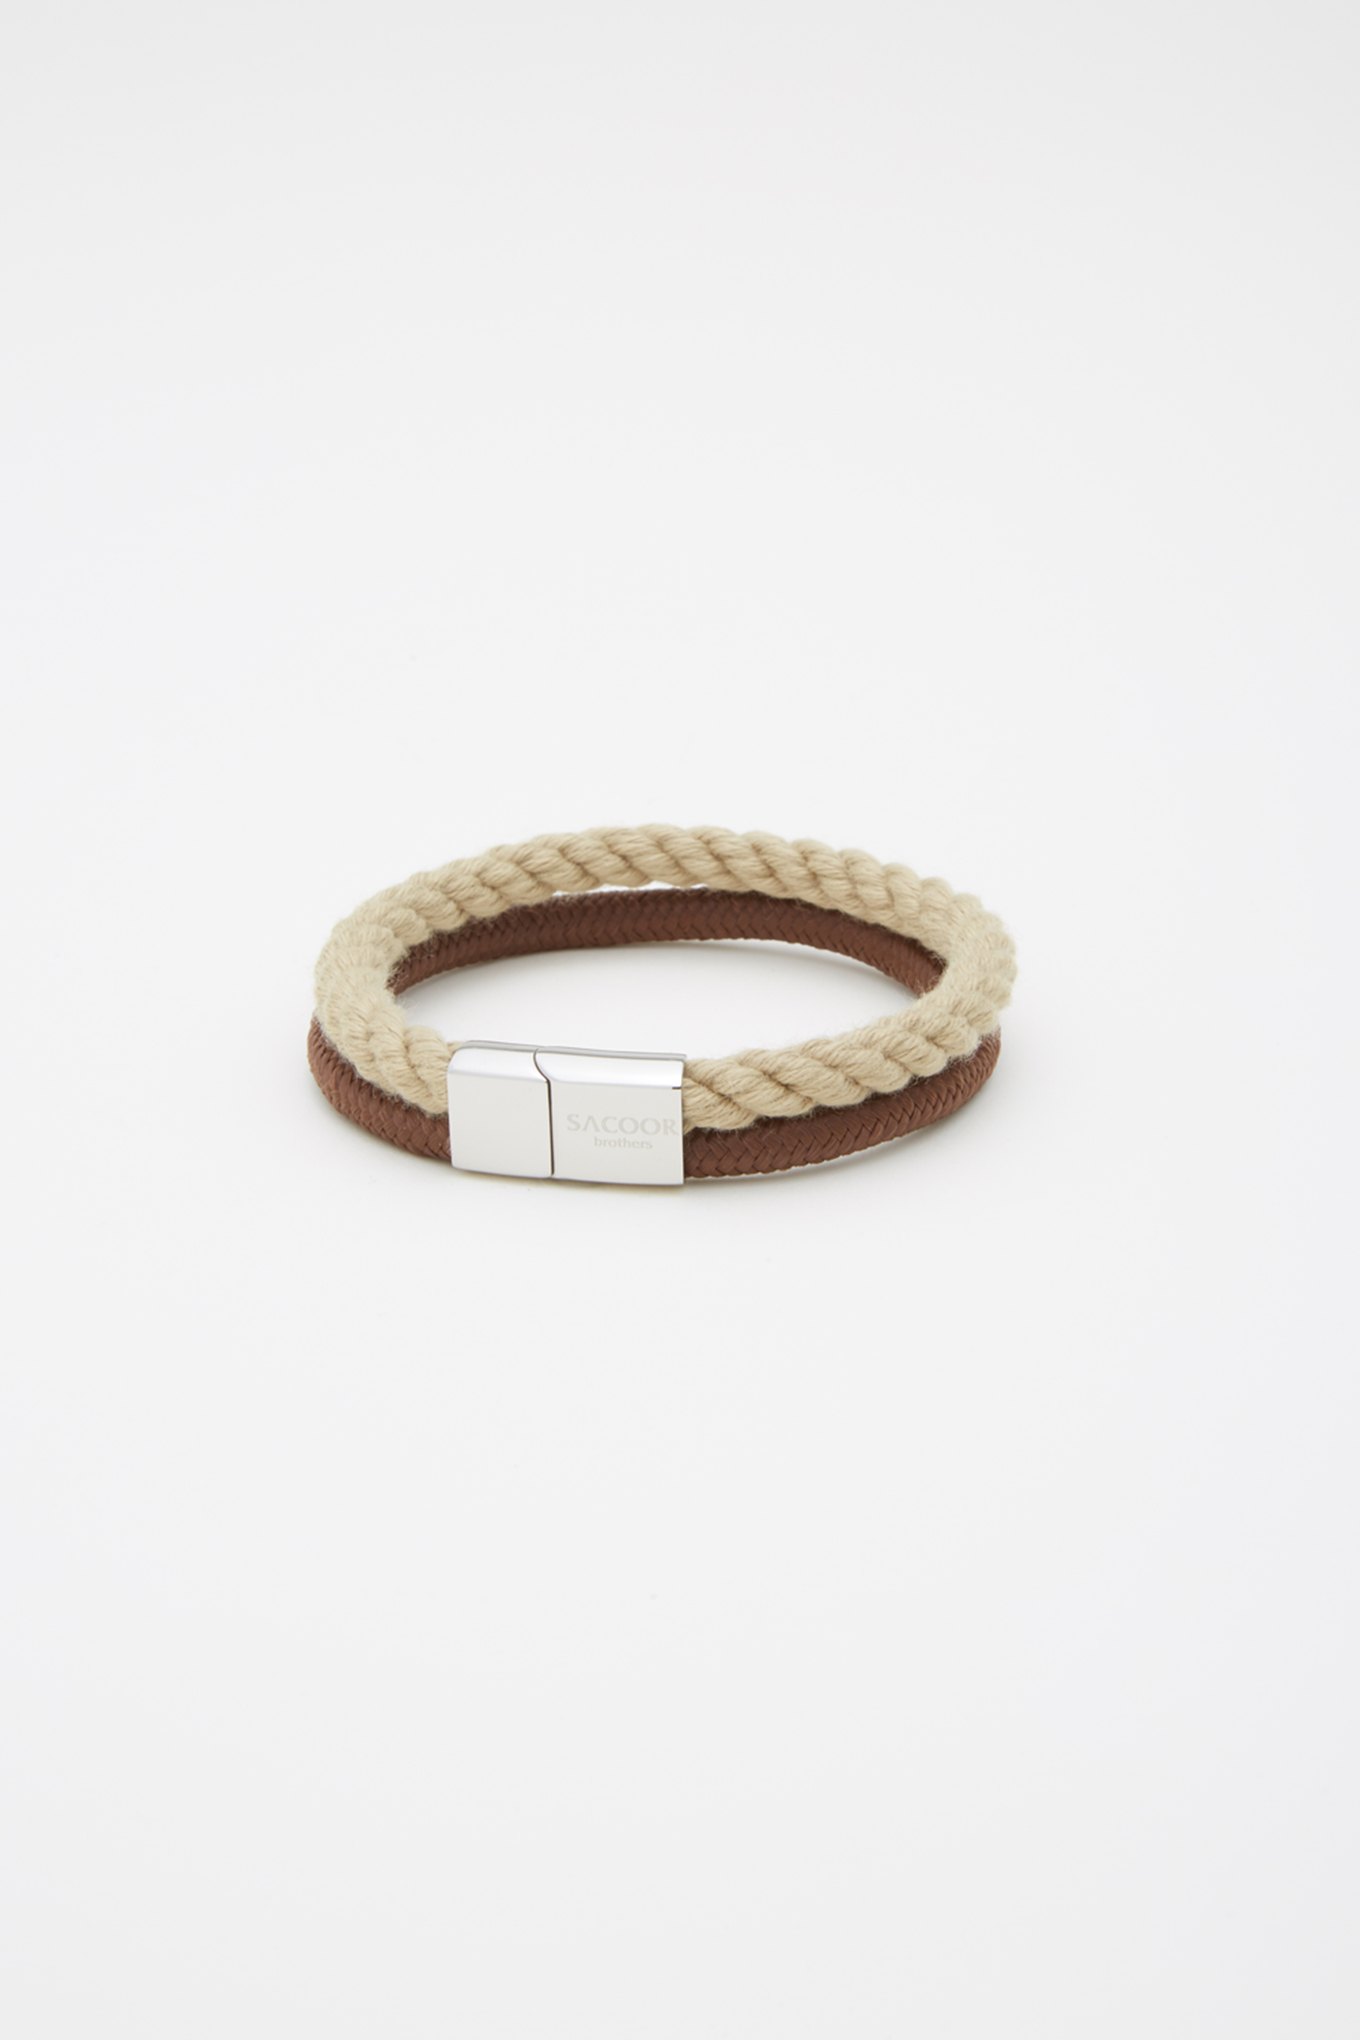 Accessories Chocolate Casual Man